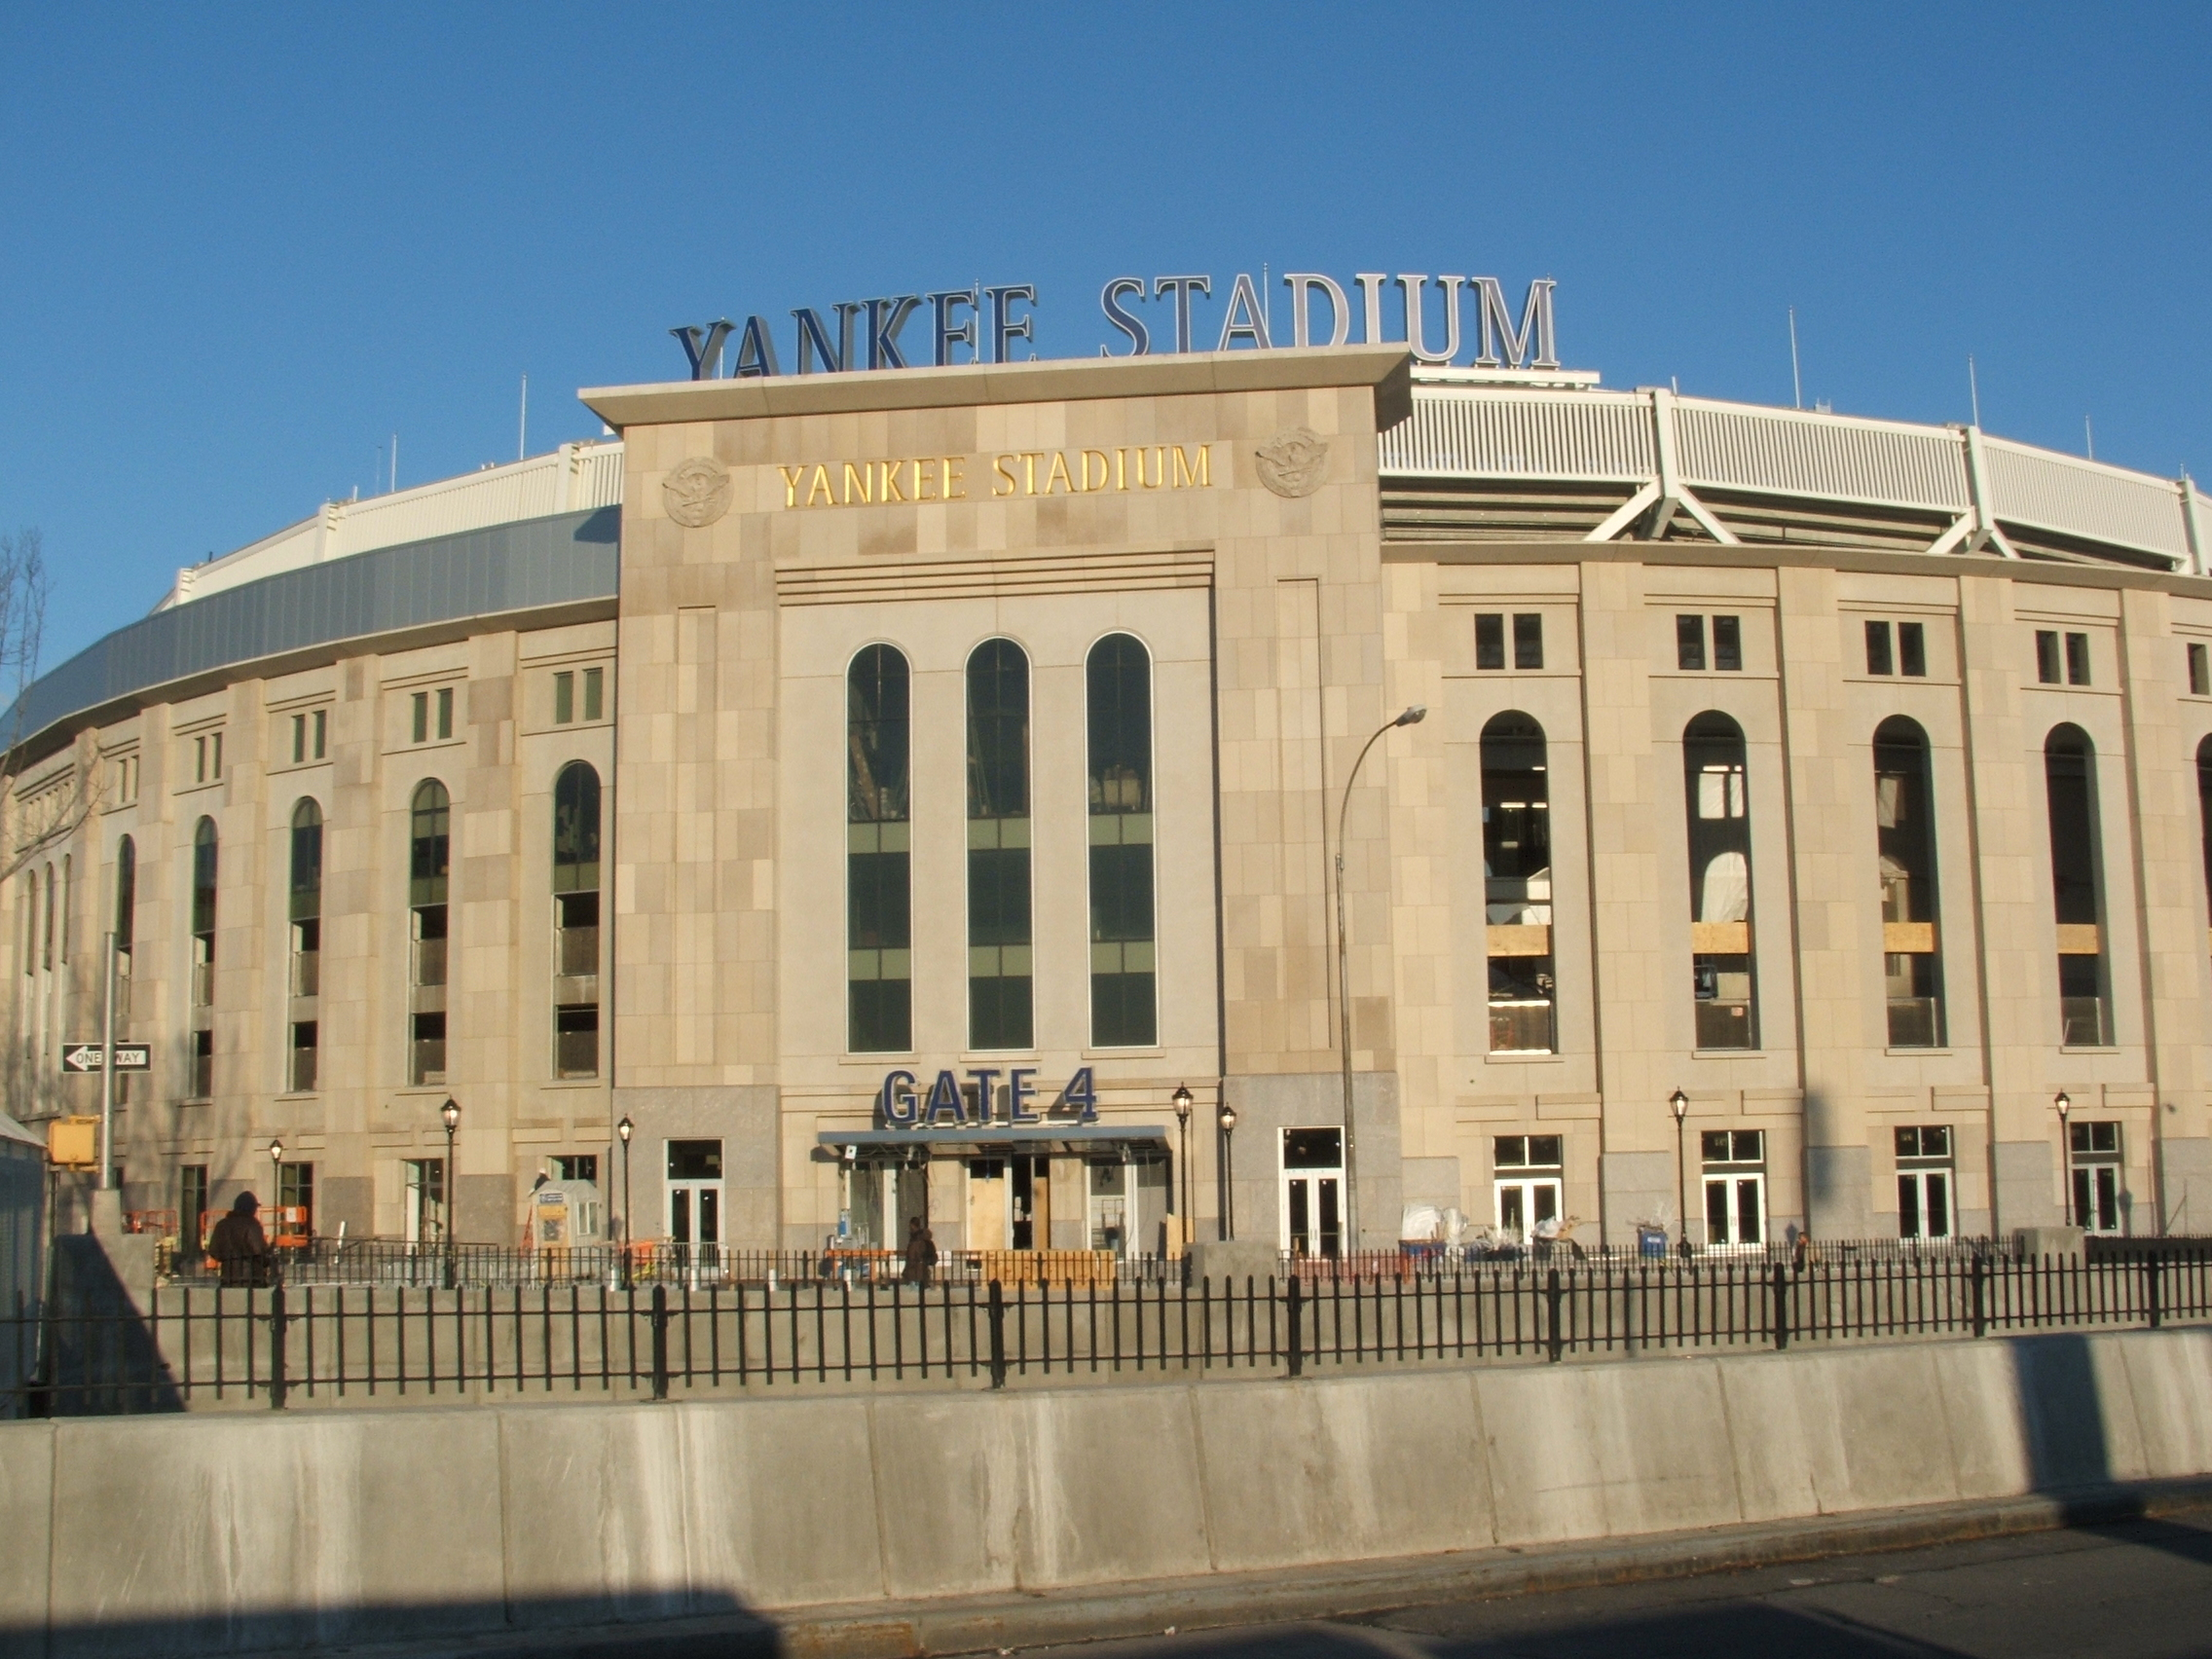 Description New Yankee StadiumJPG 2272x1704